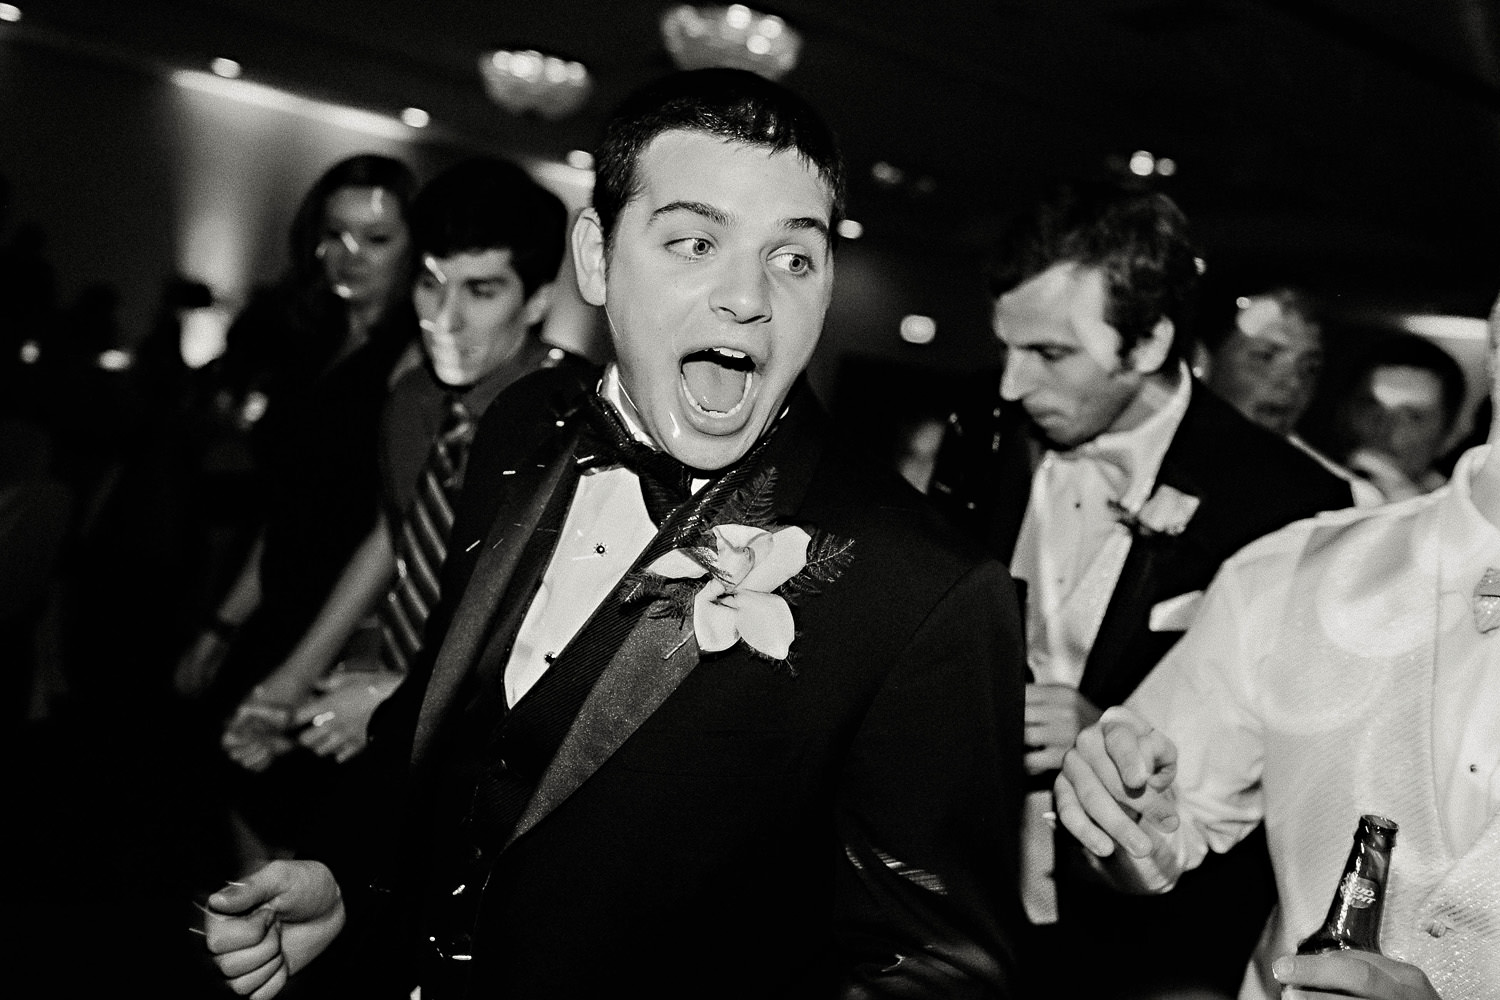 A groom dancing at his reception